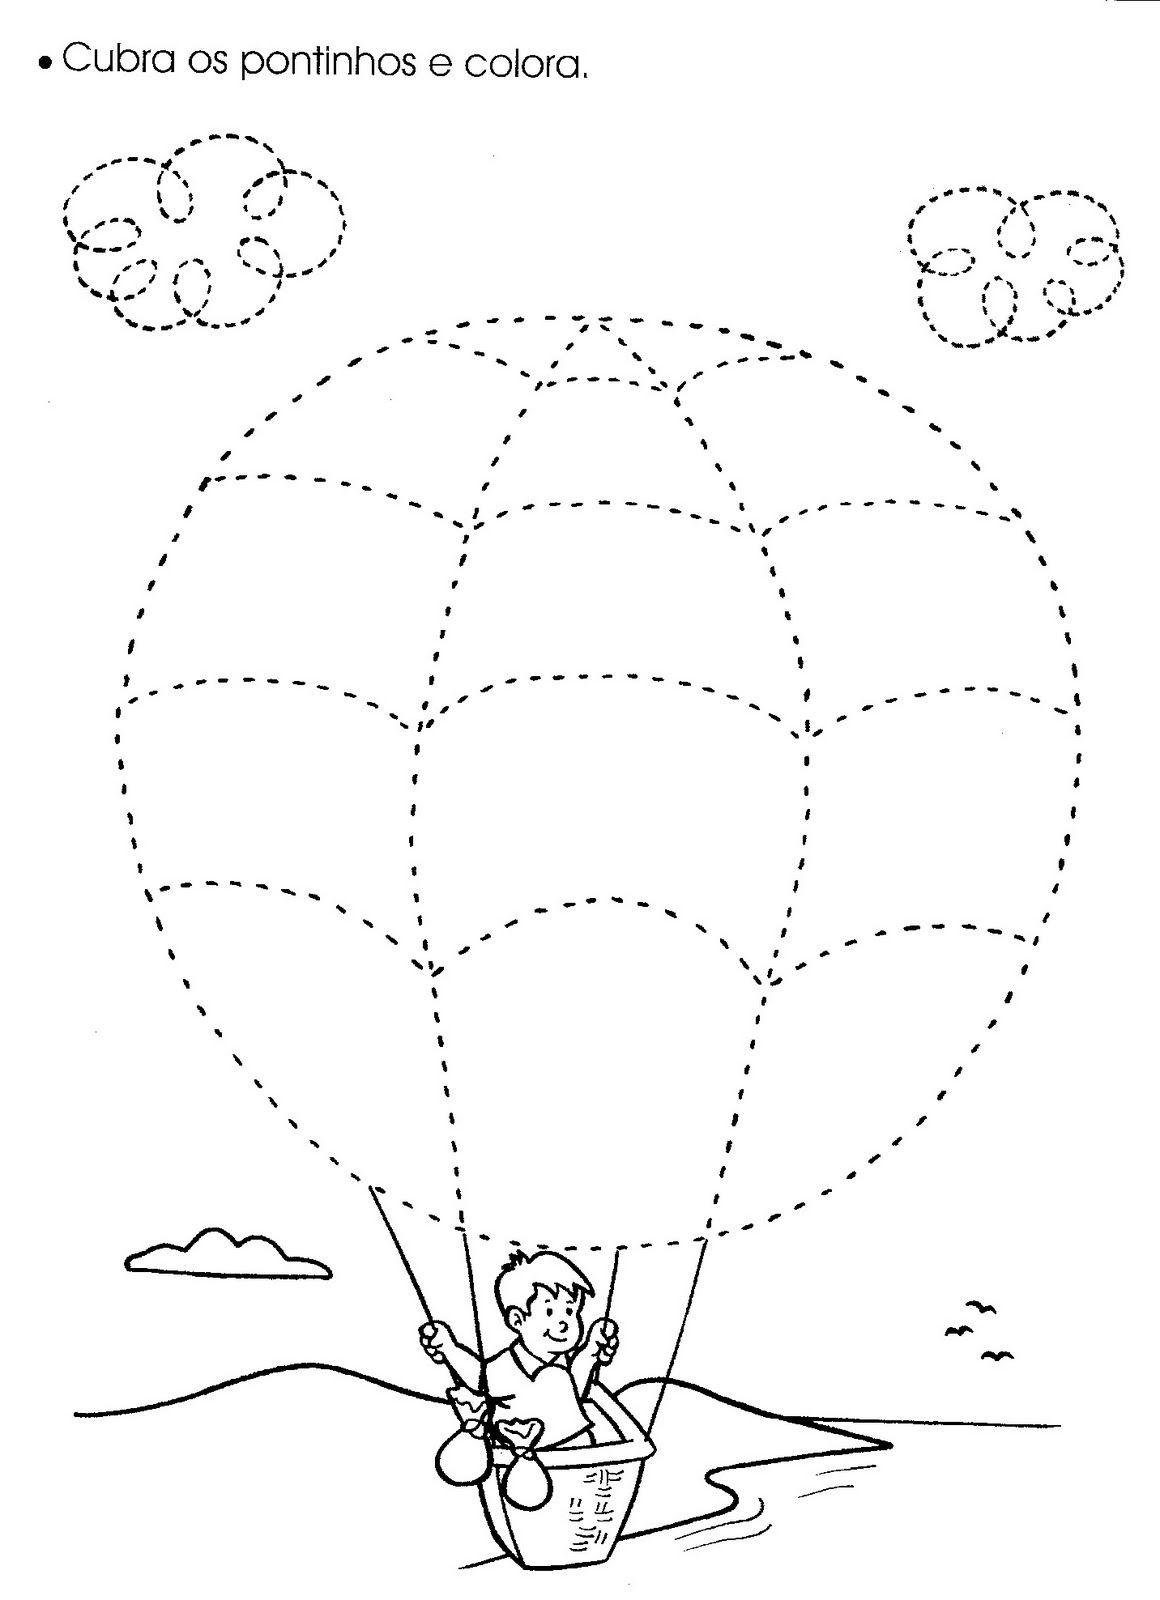 Hot Air Balloon Trace Worksheet Crafts And Worksheets For Preschool Toddler Transportation Preschool Transportation Worksheet Transportation Theme Preschool